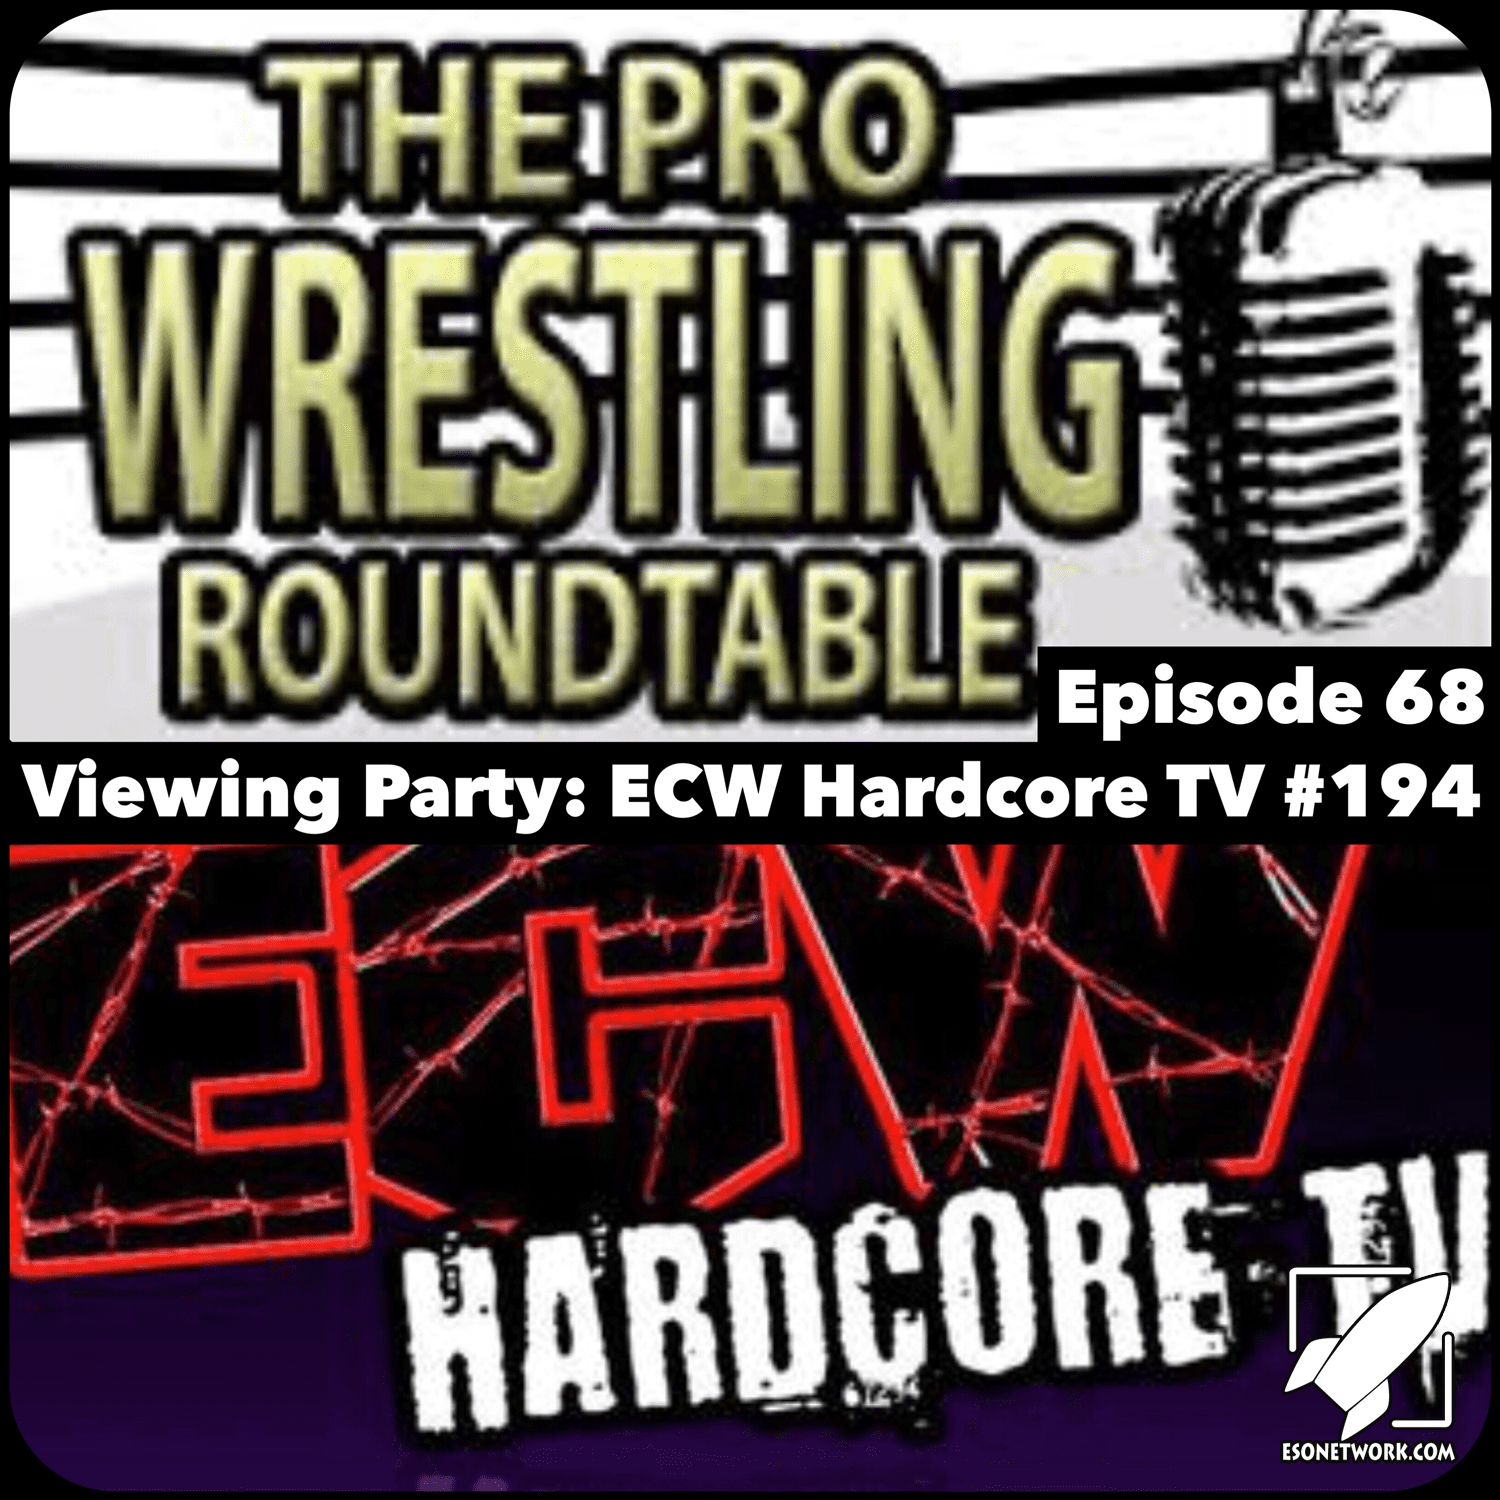 The Pro Wrestling Roundtable Ep 68